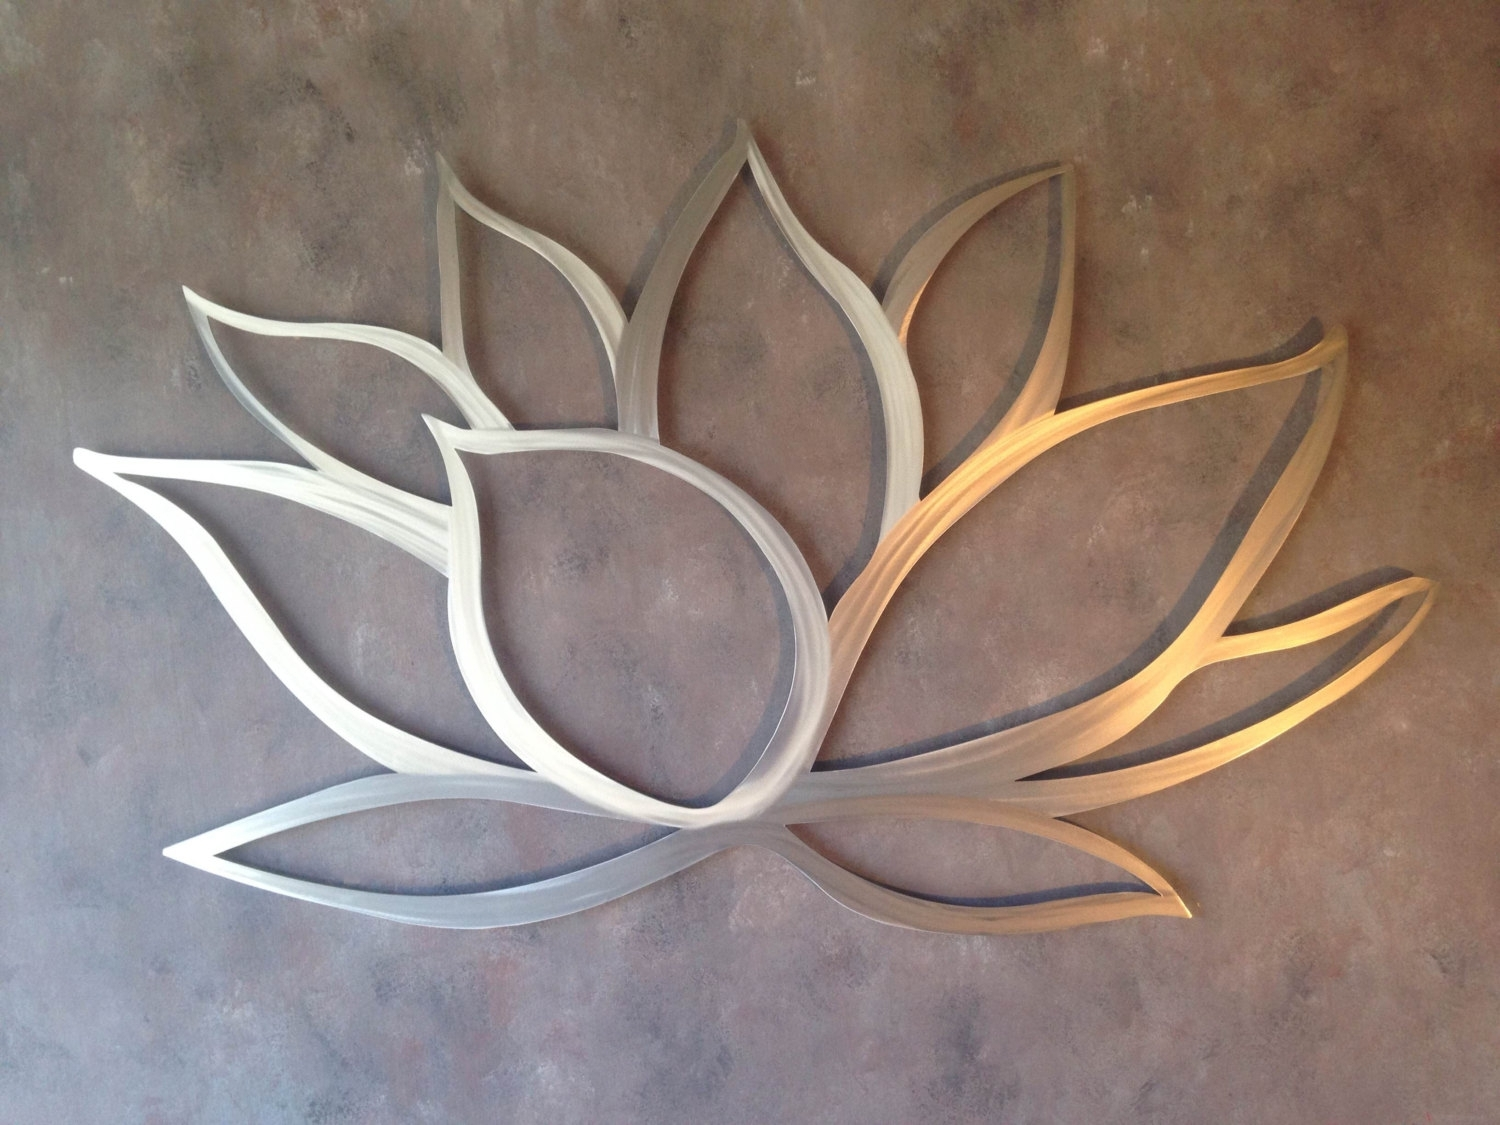 Outdoor Metal Wall Art Design Ideas | Sorrentos Bistro Home Intended For 2017 Abstract Flower Metal Wall Art (Gallery 4 of 20)